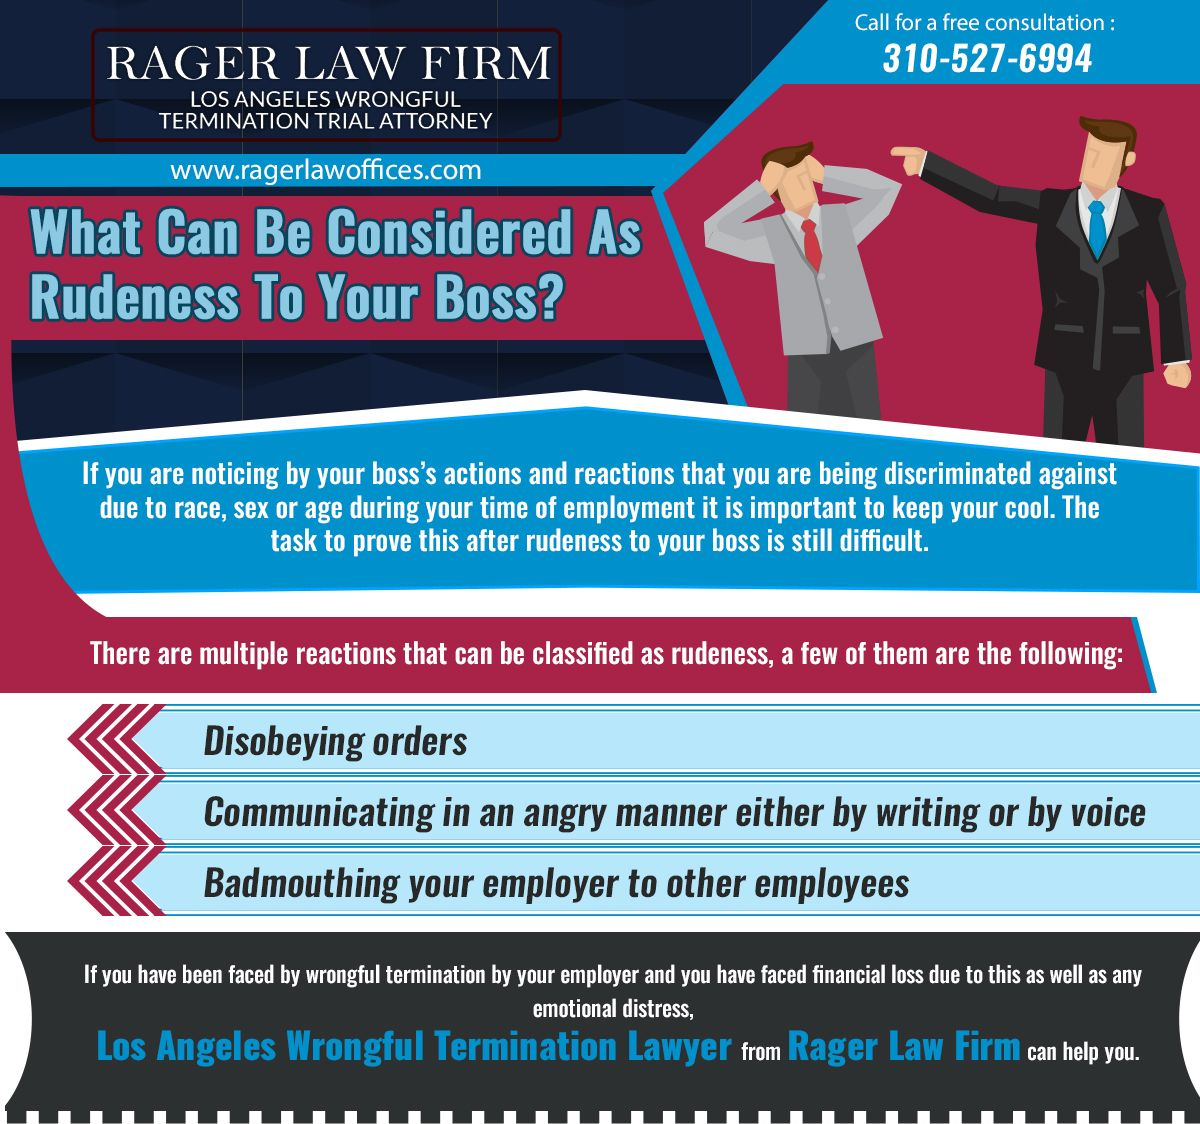 390c90b7471f3981401d216e4a314eef - How To Ask Your Boss If You Are Getting Fired